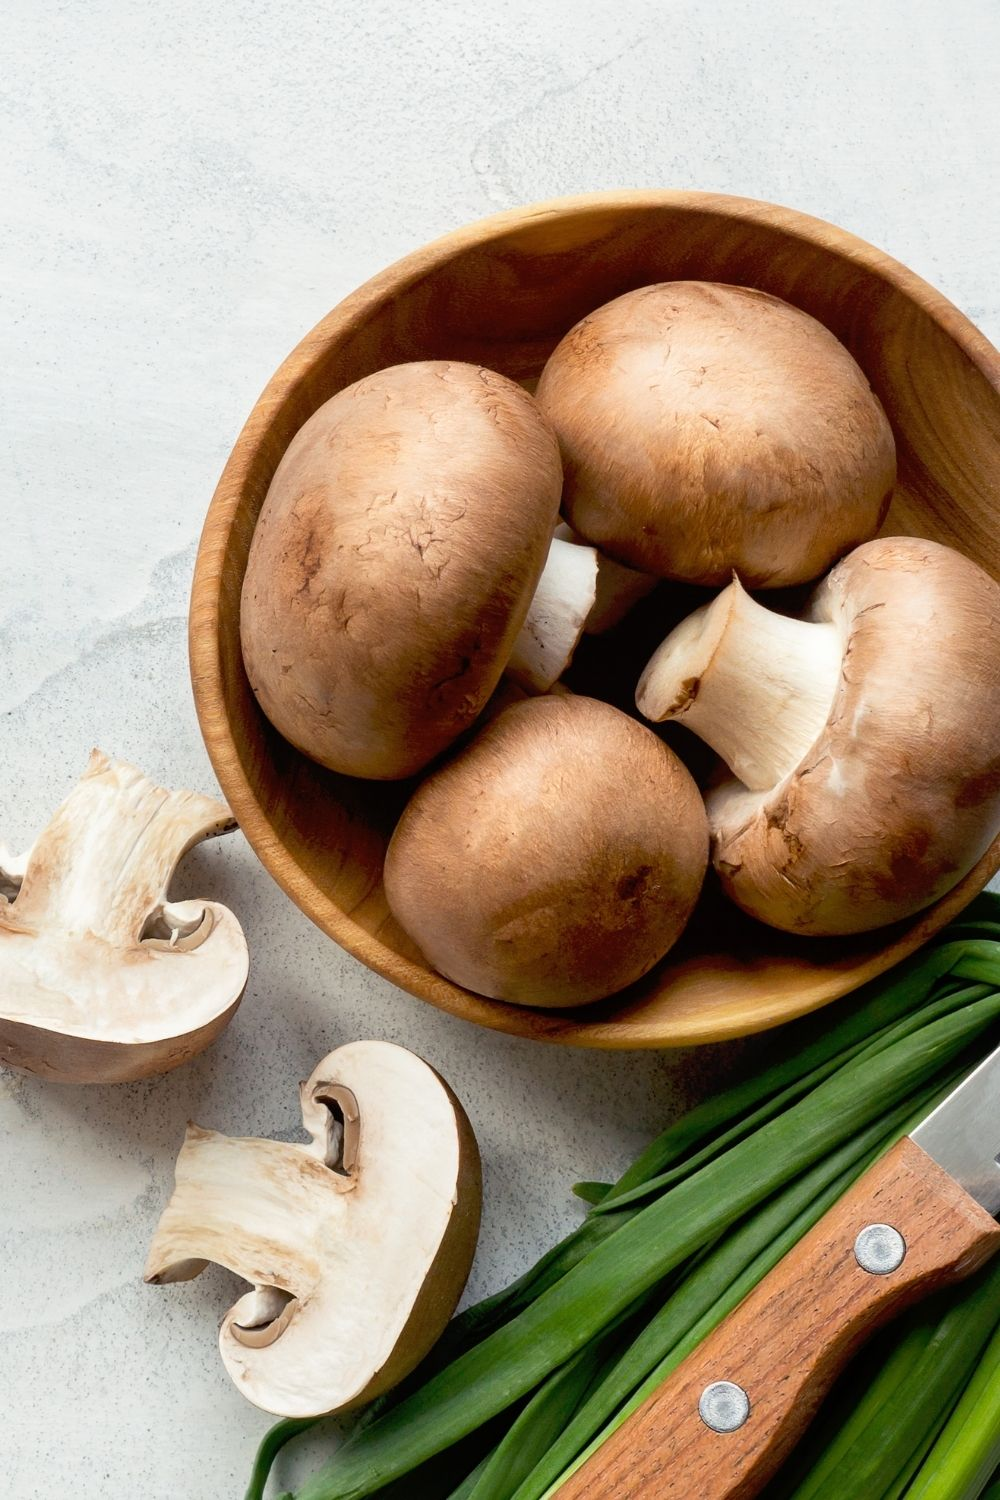 Bowl of mushrooms on a table.